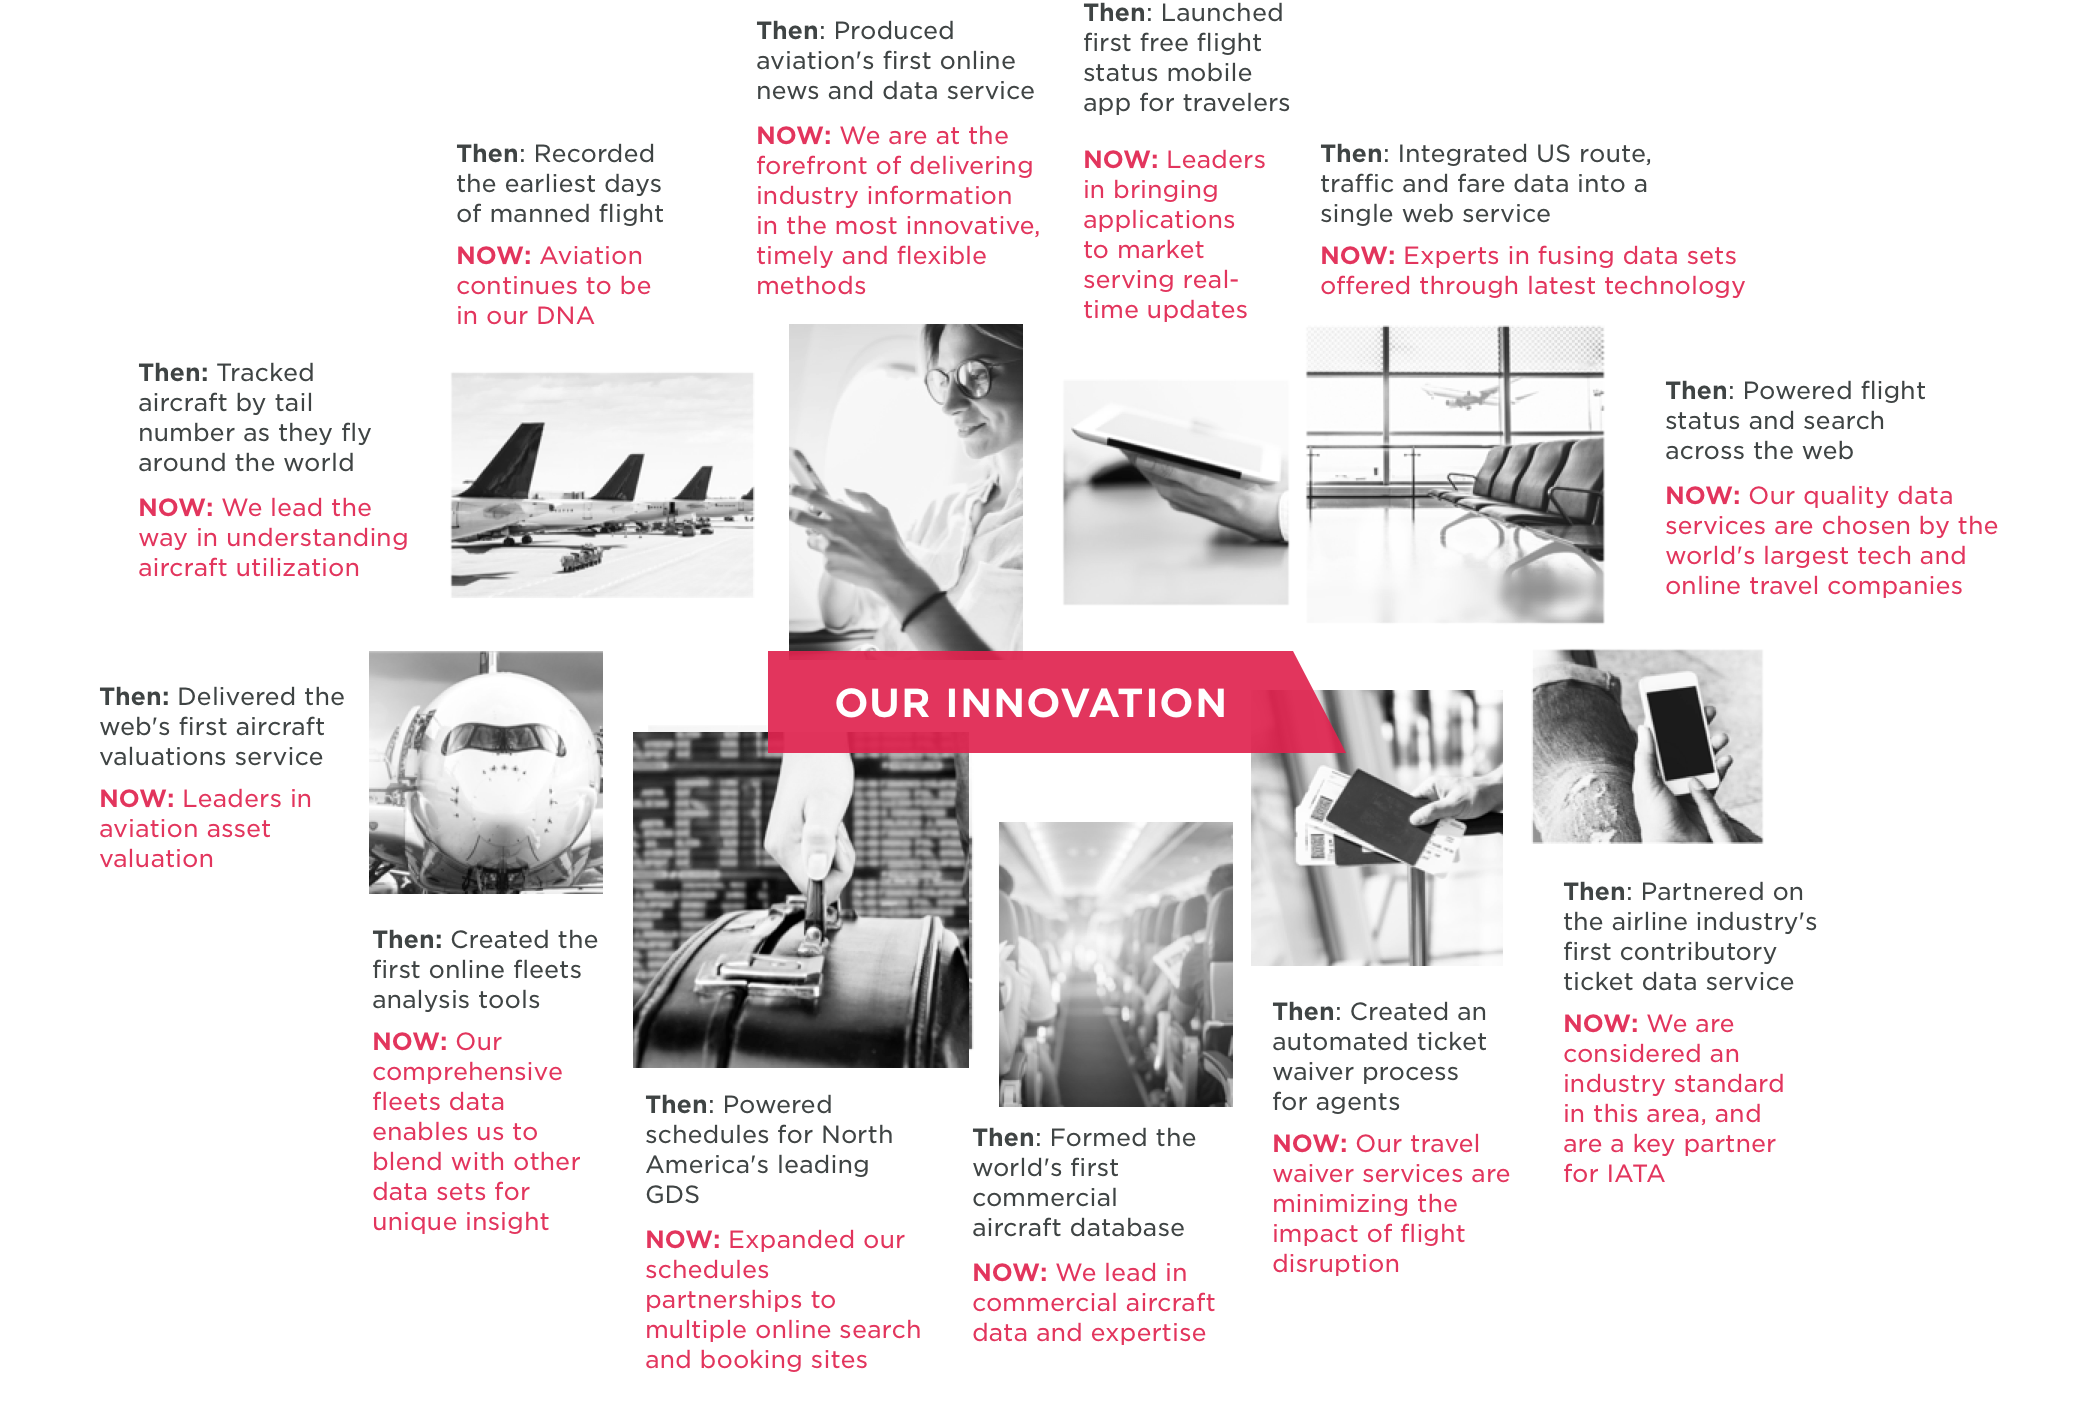 Our innovation infographic